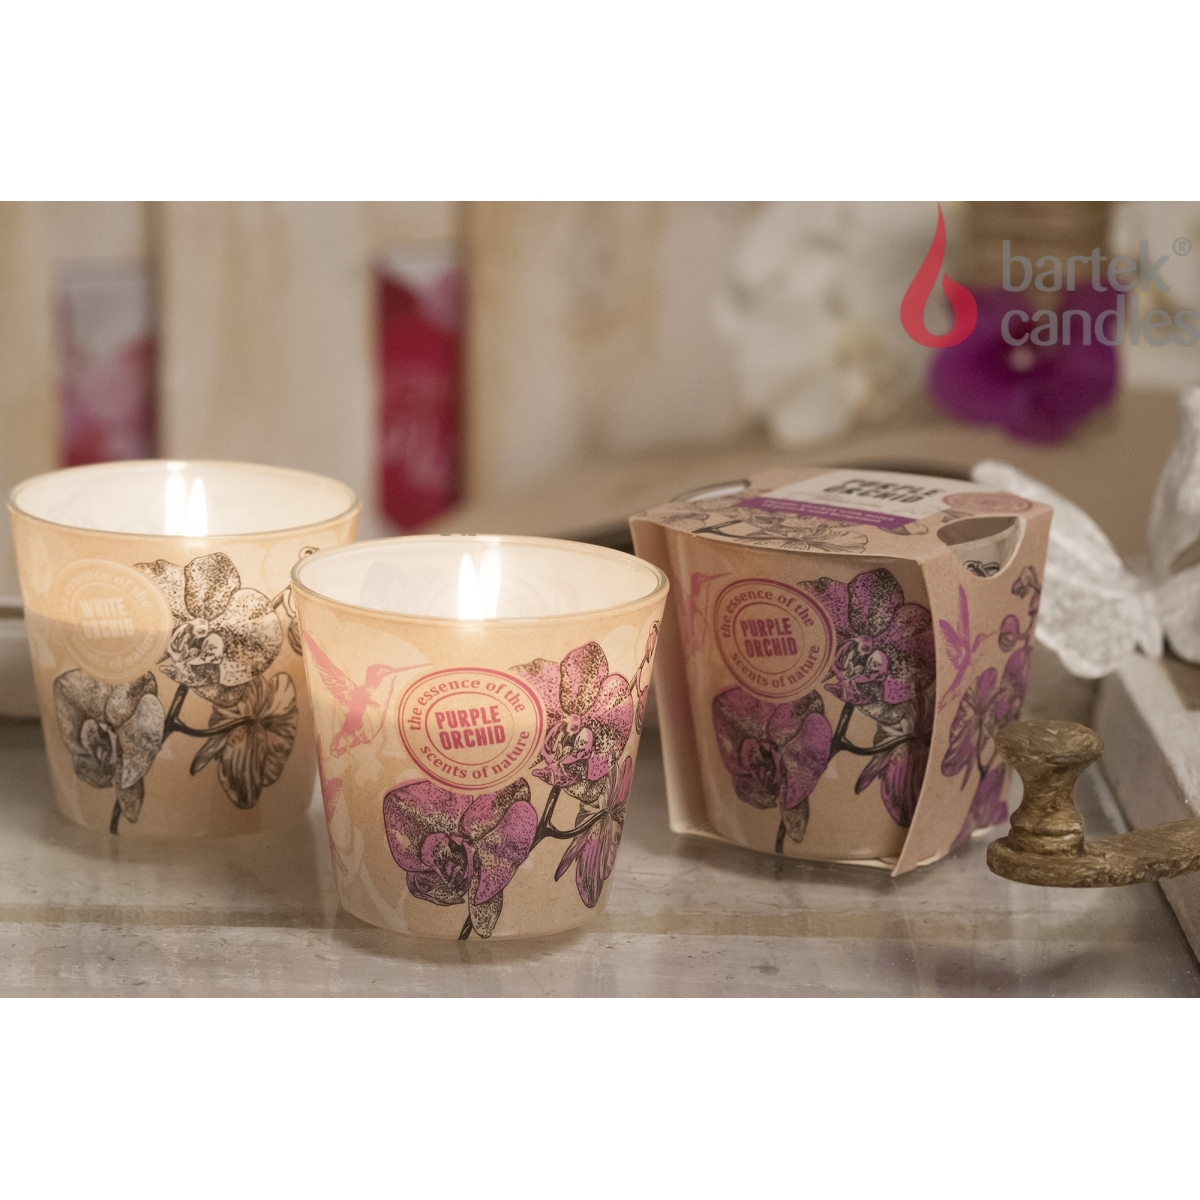 Bartek Candles 115 g Charming Orchid Eco